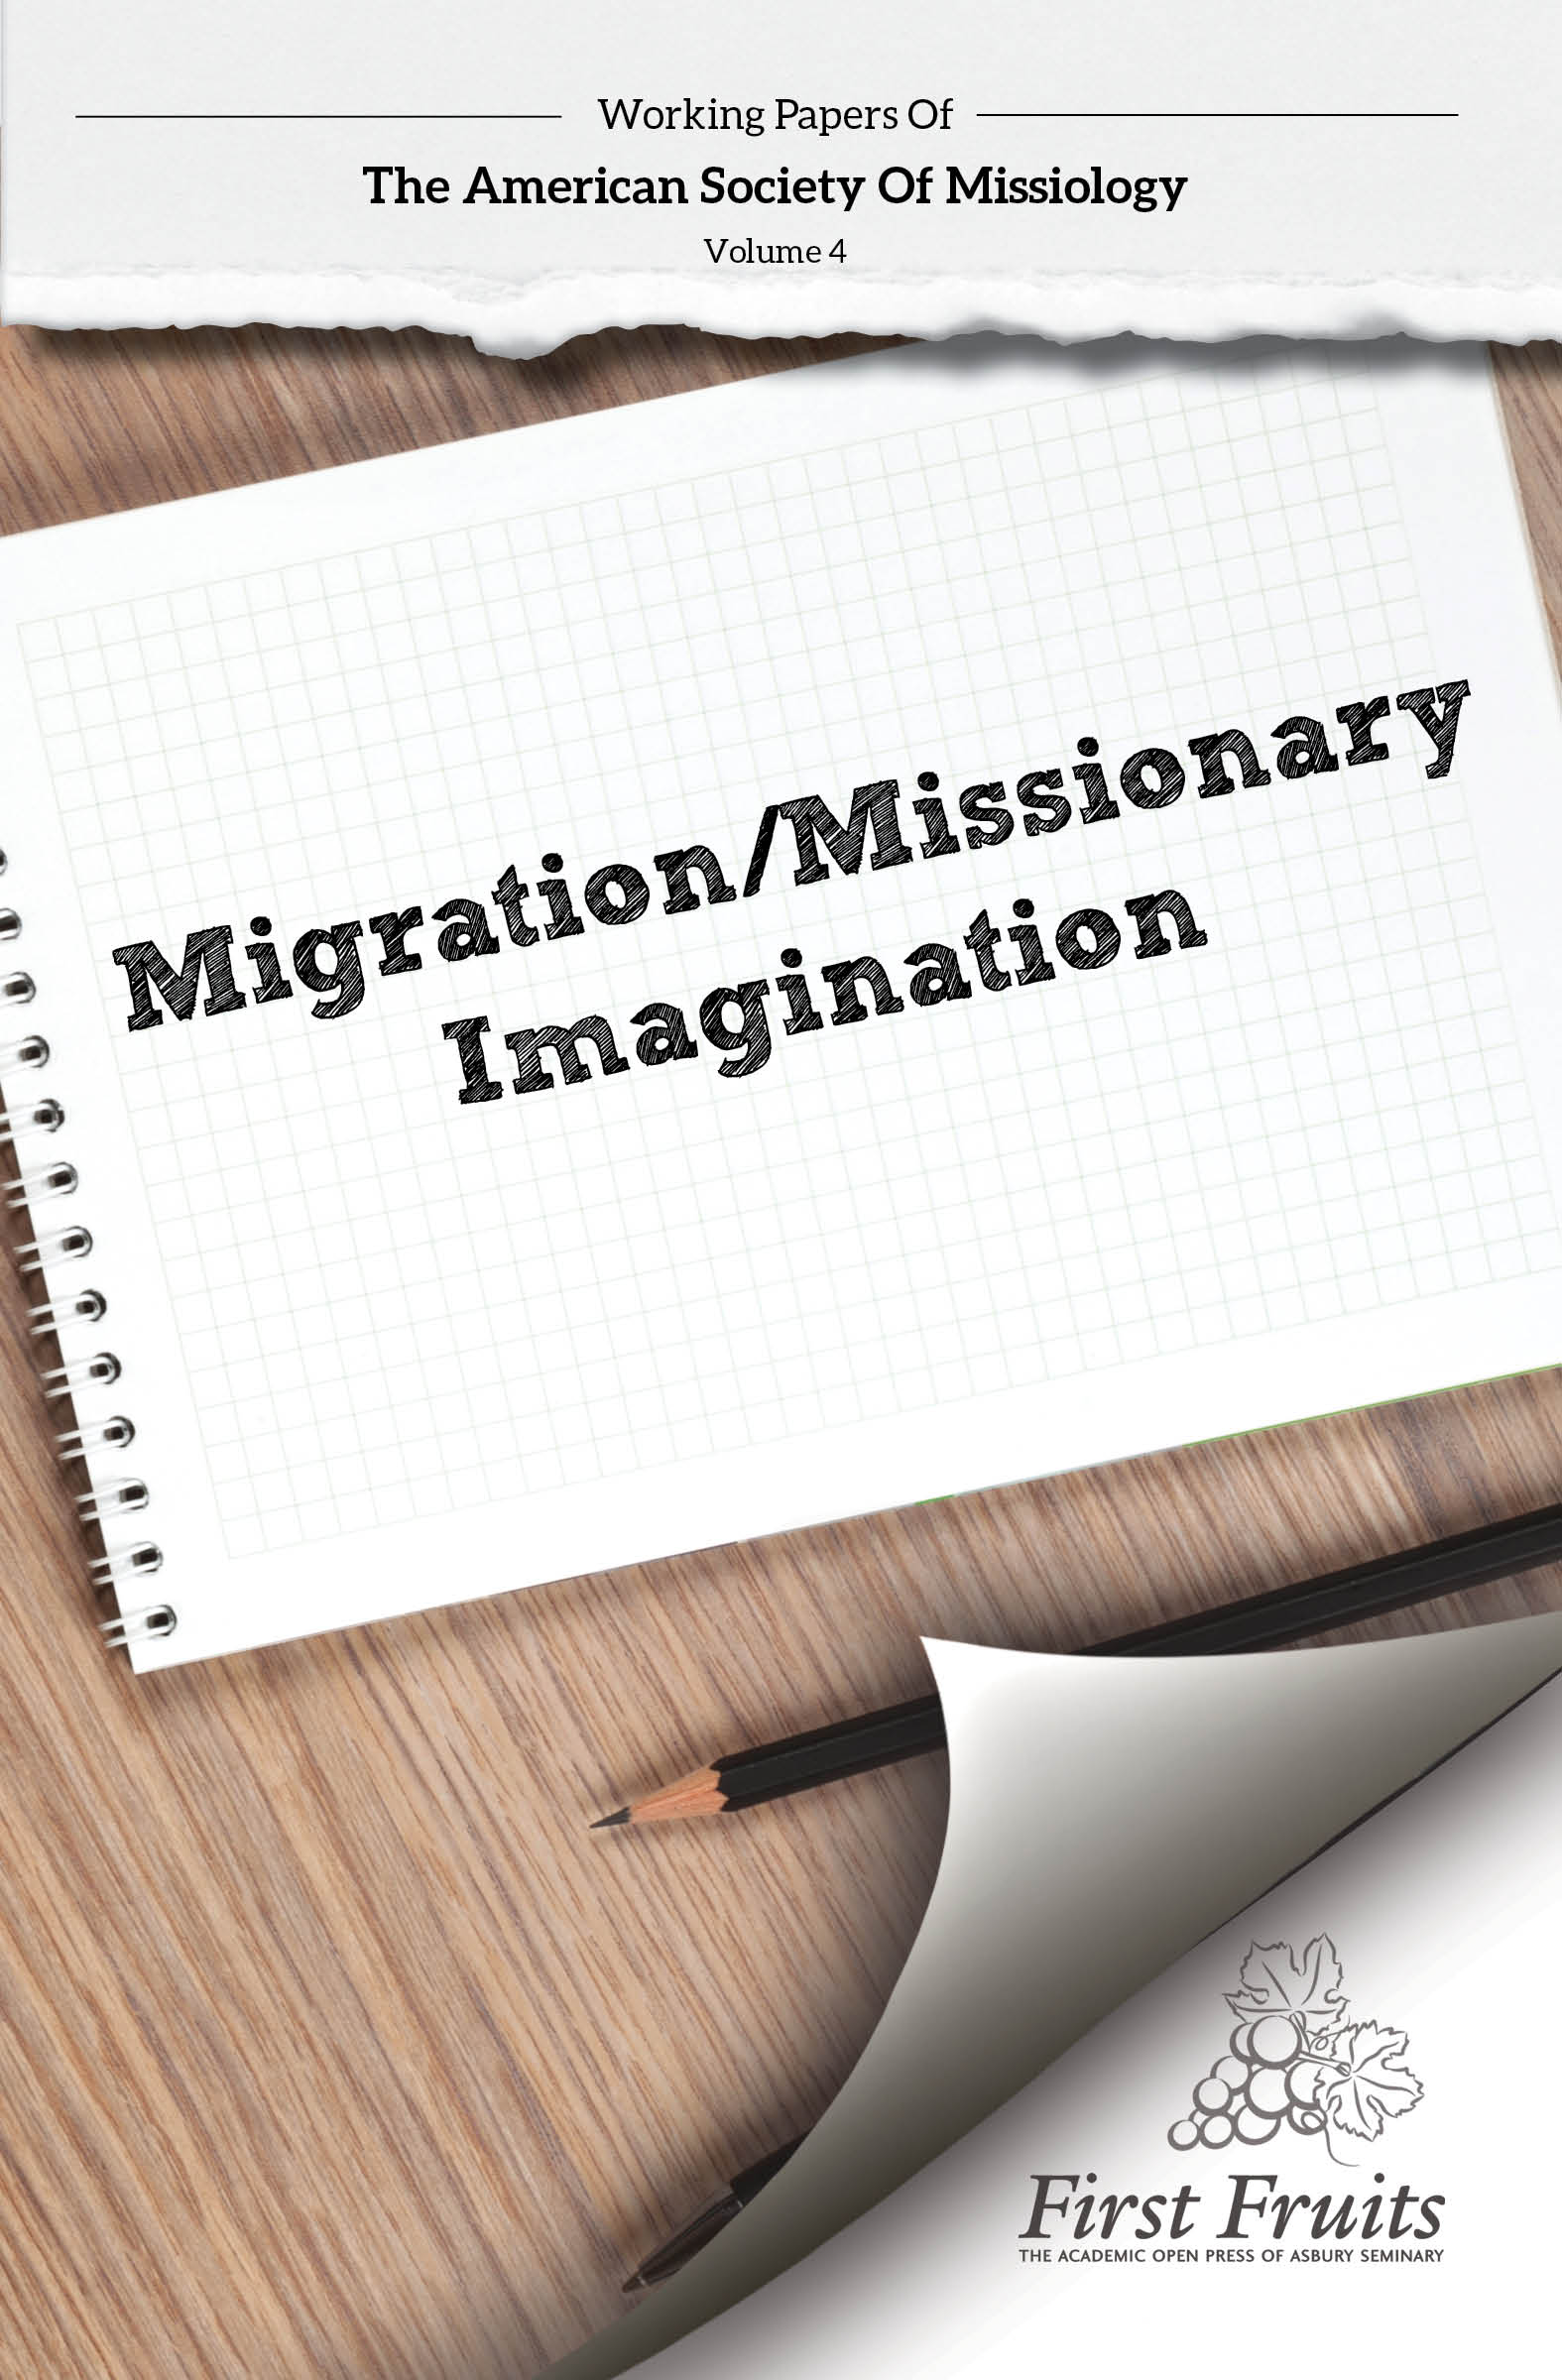 Working Papers of the American Society of Missiology; Vol. 4 Migration/ Missionary Imagination